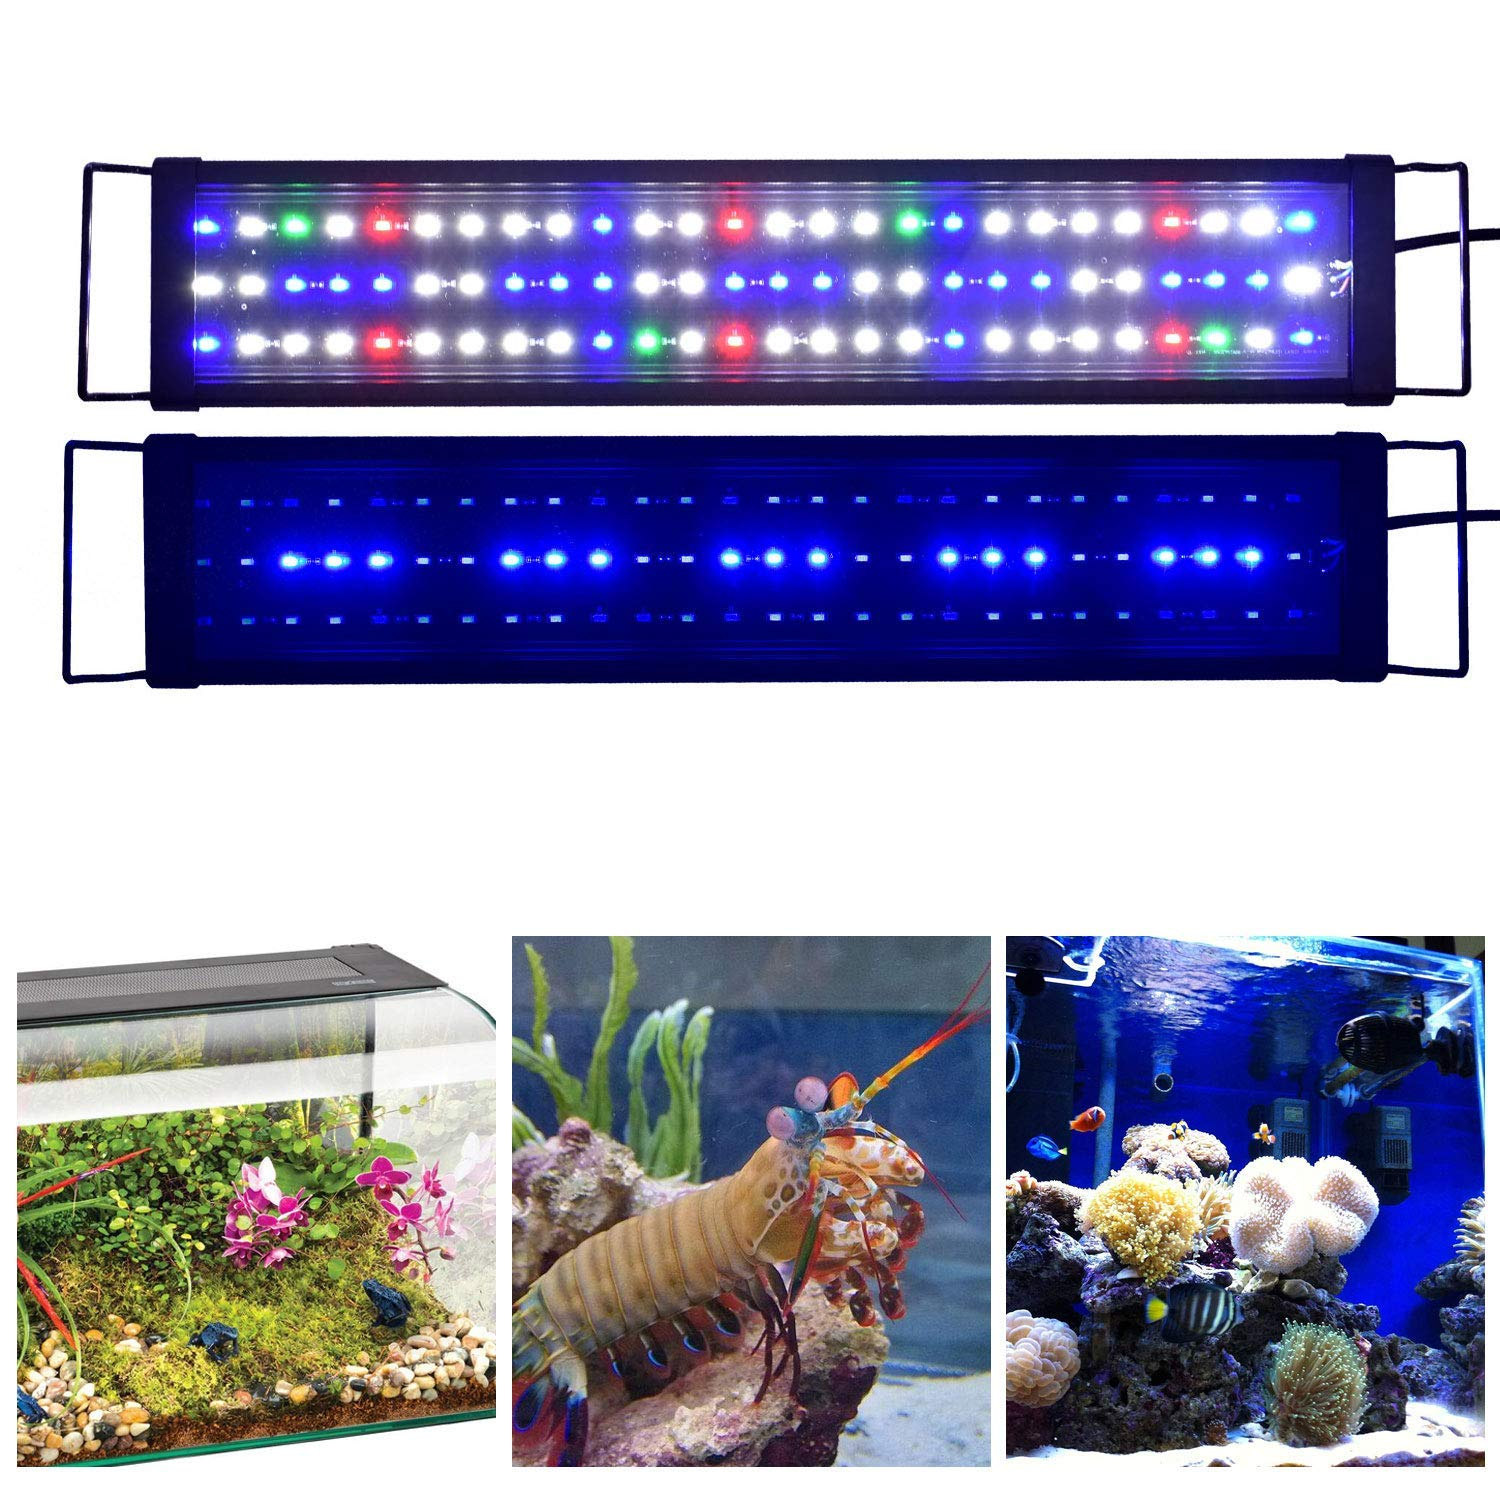 90CM PLUY Aquarium Hood Lighting LED Fish Tank Light 12-47 inch Lamp for Freshwater Saltwater Marine Full Spectrum bluee and White Decorations Light